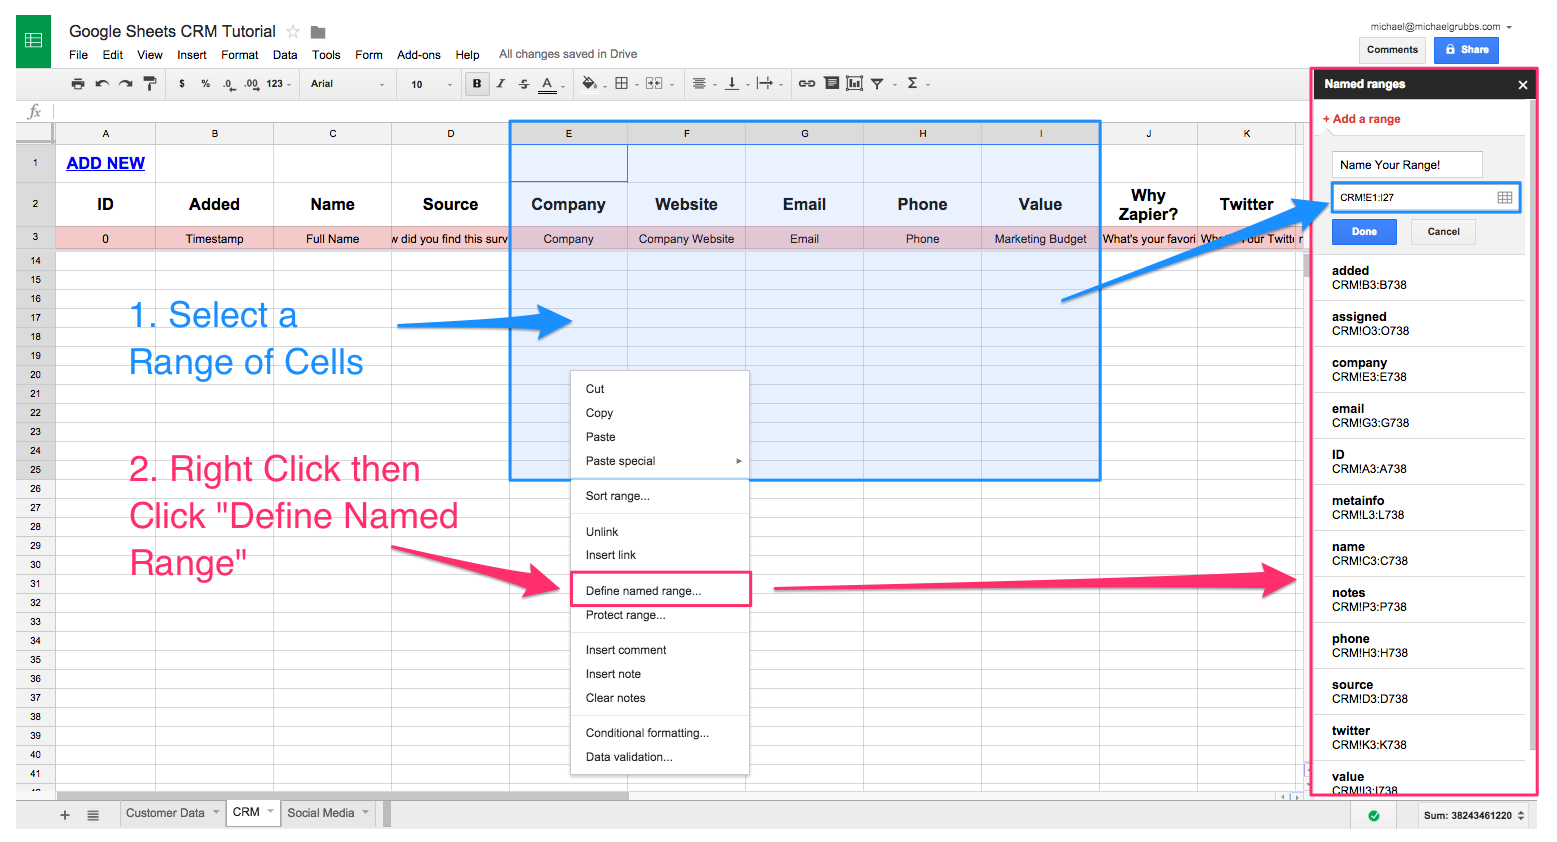 Optimization Modeling With Spreadsheets 3rd Edition